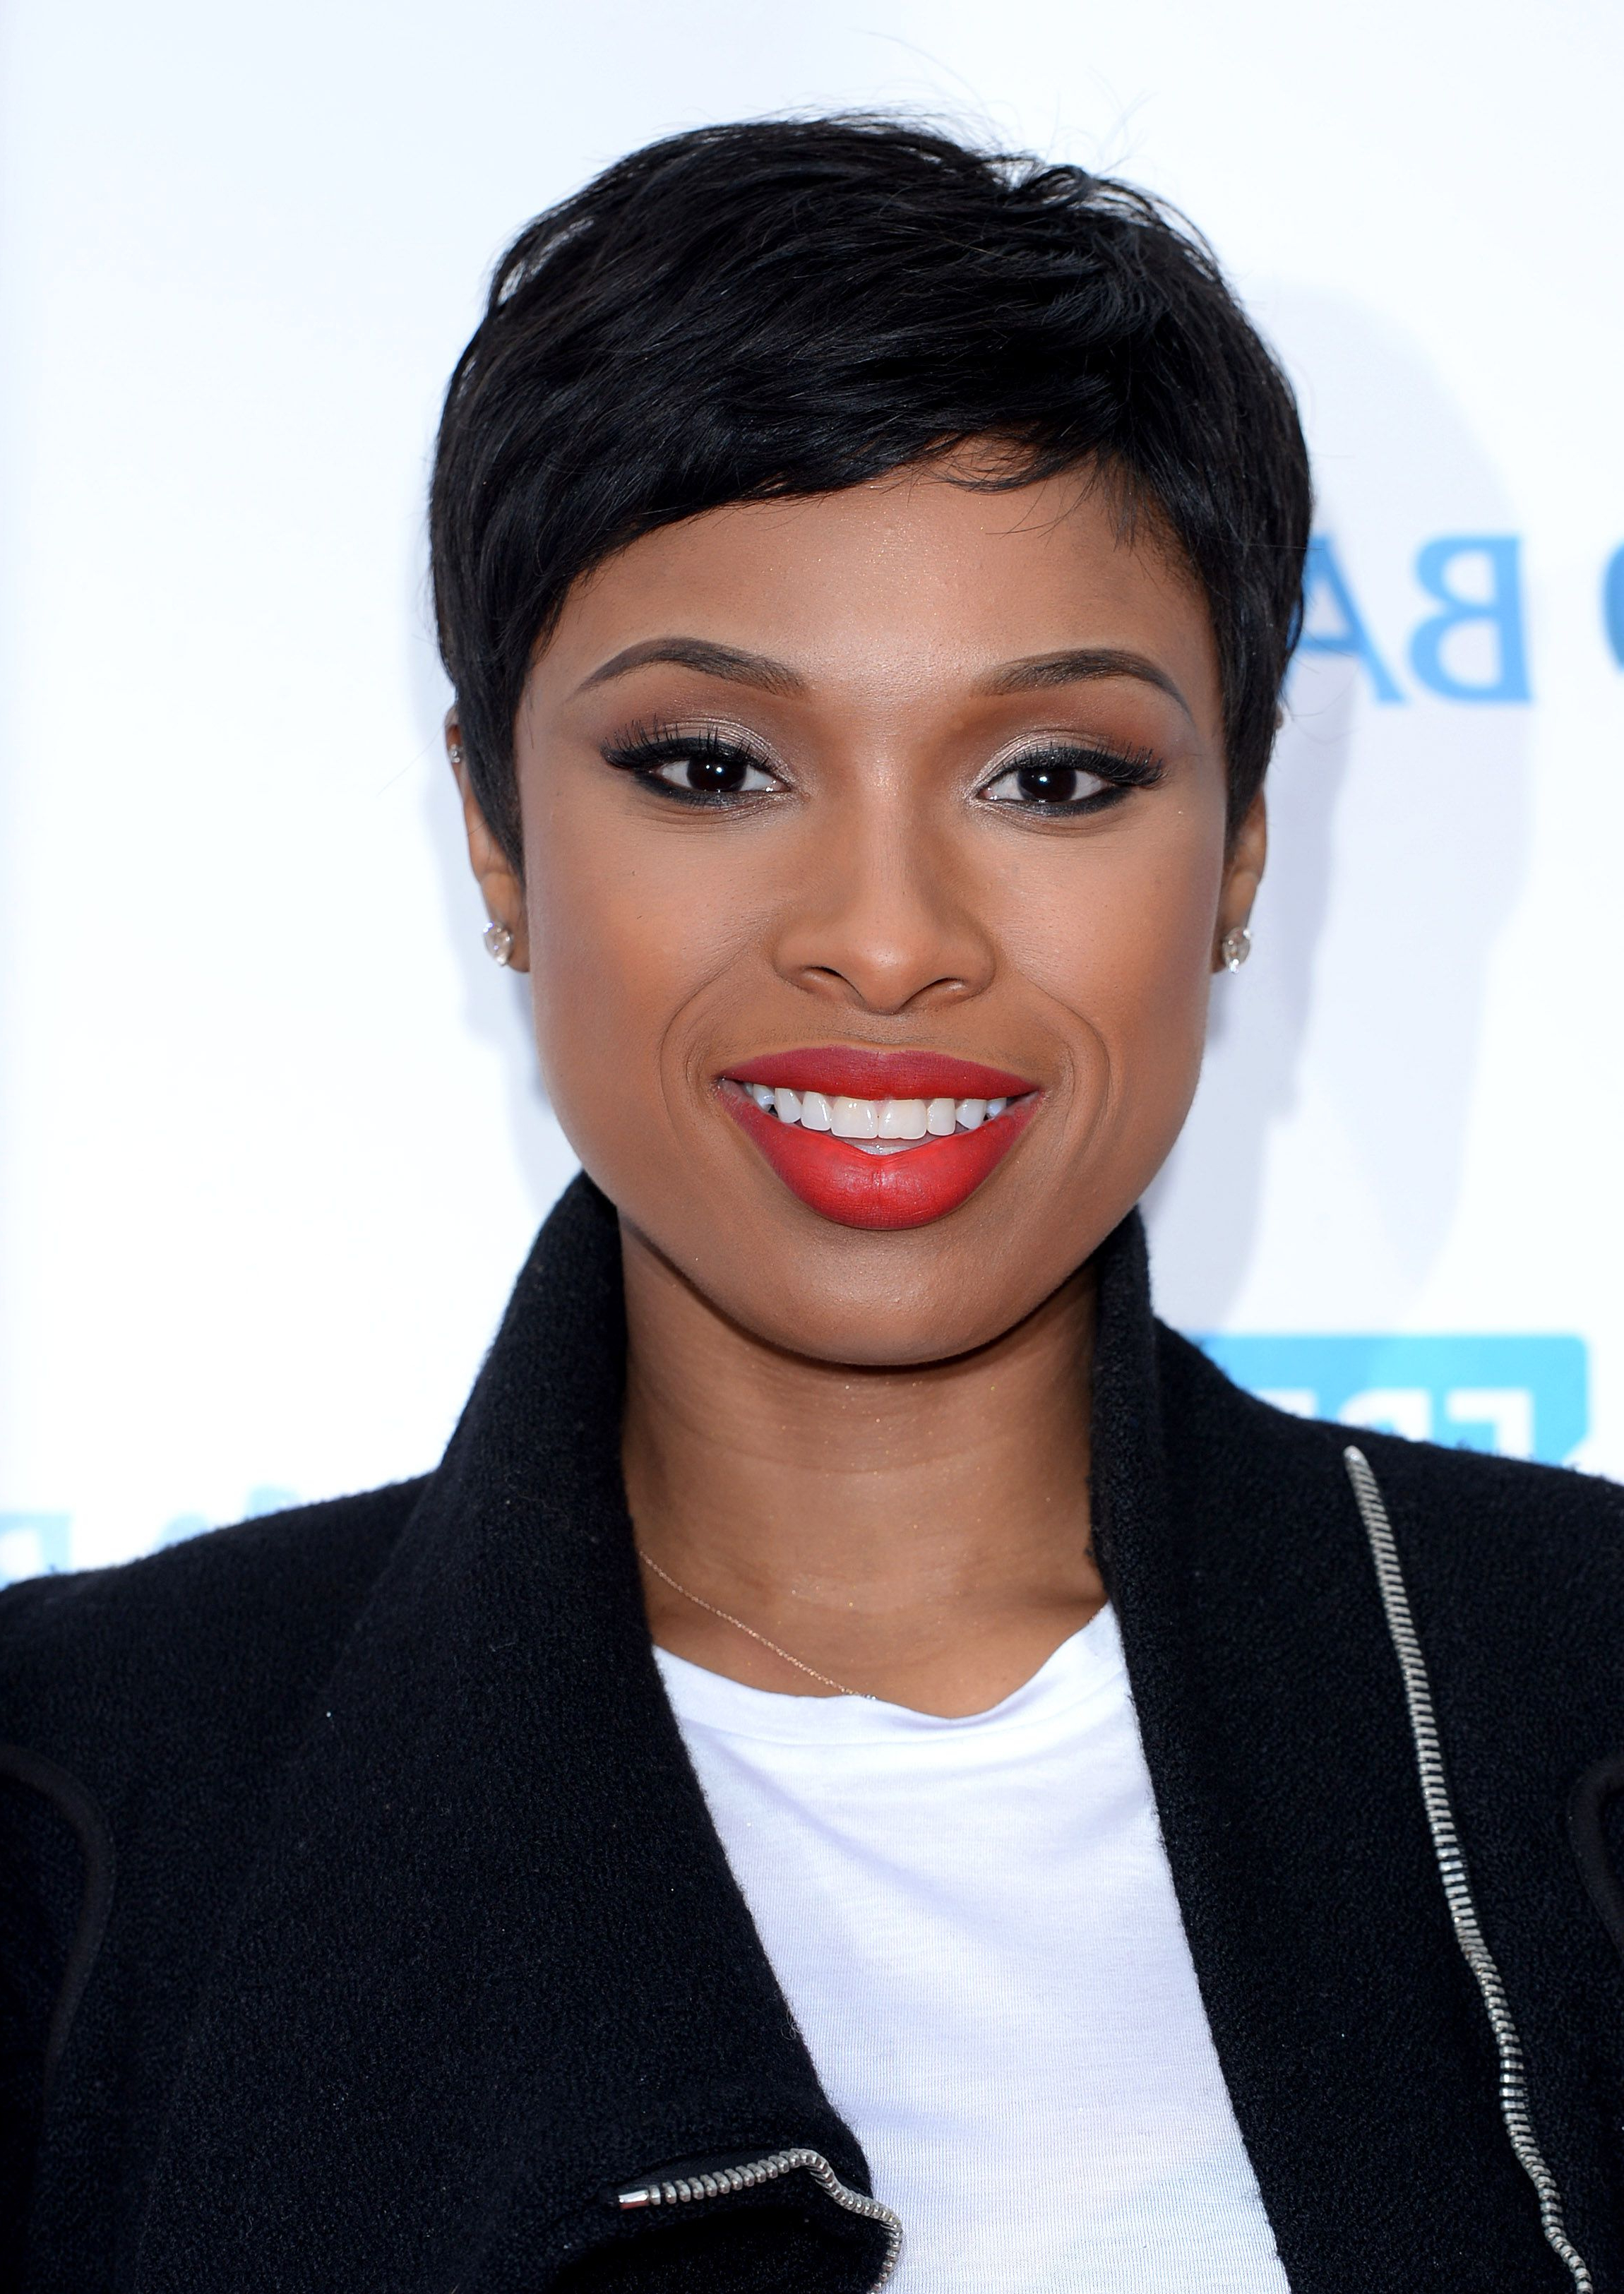 40 Best Short Pixie Cut Hairstyles 2018 – Cute Pixie Haircuts For Women For Short Haircuts For Black Women With Fine Hair (View 16 of 25)